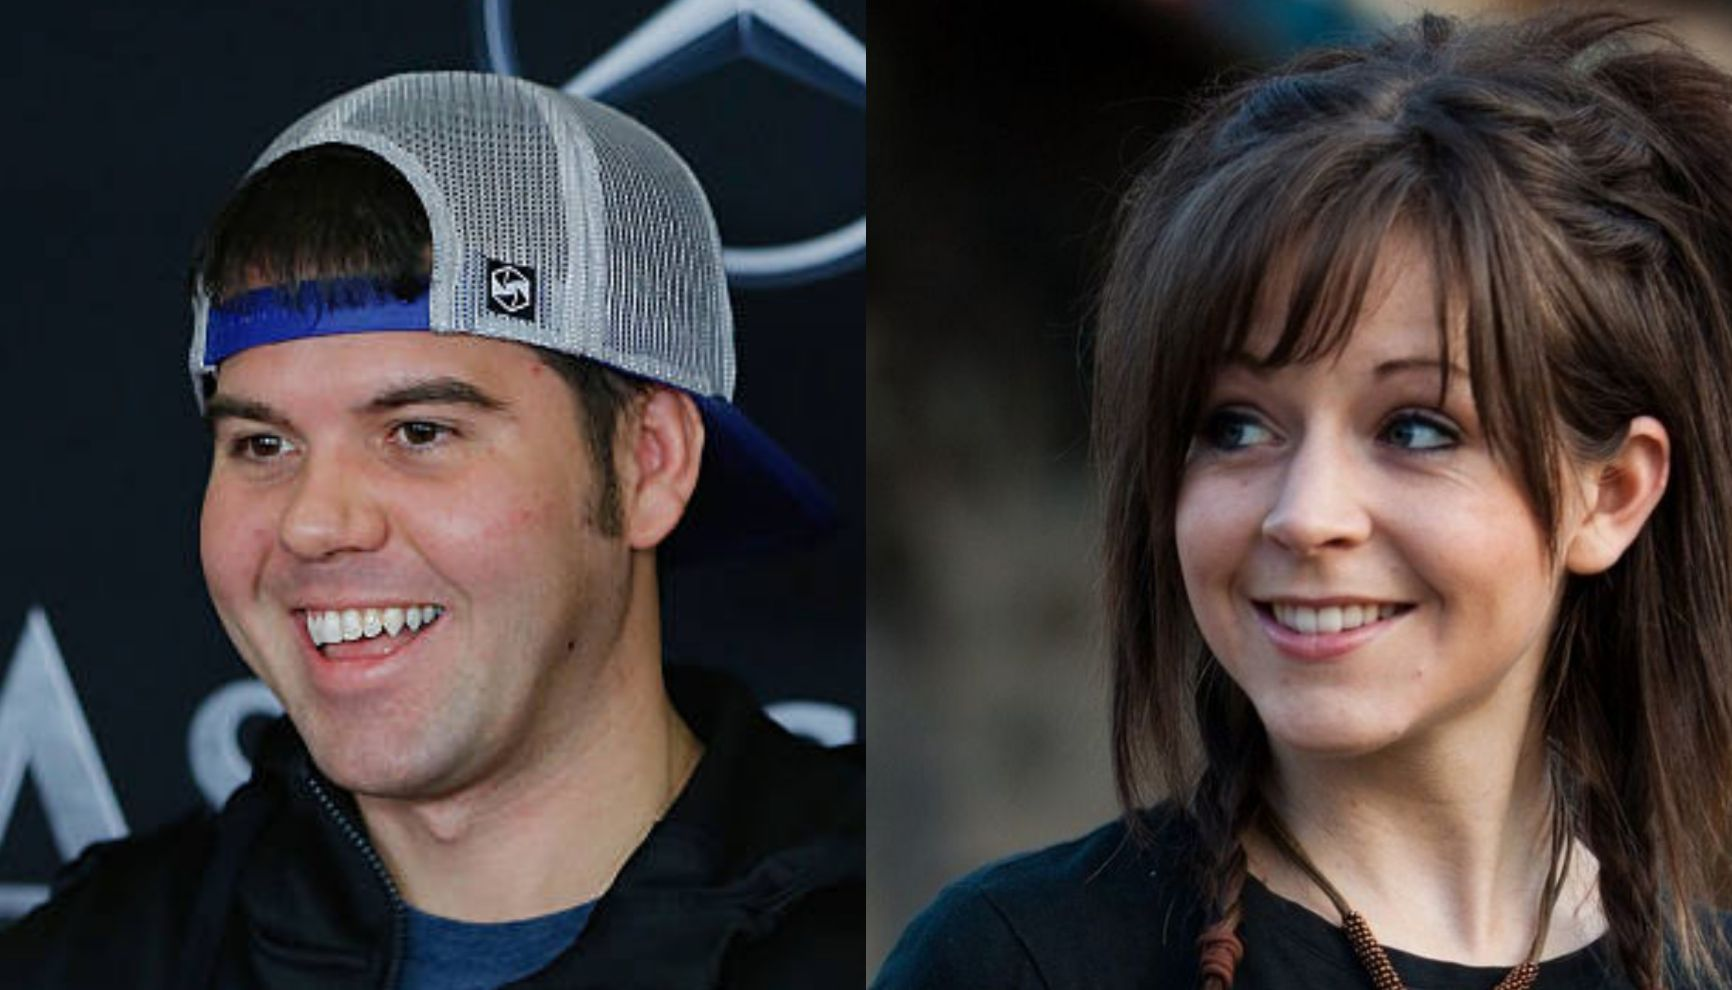 Who is Lindsey stirling dating?